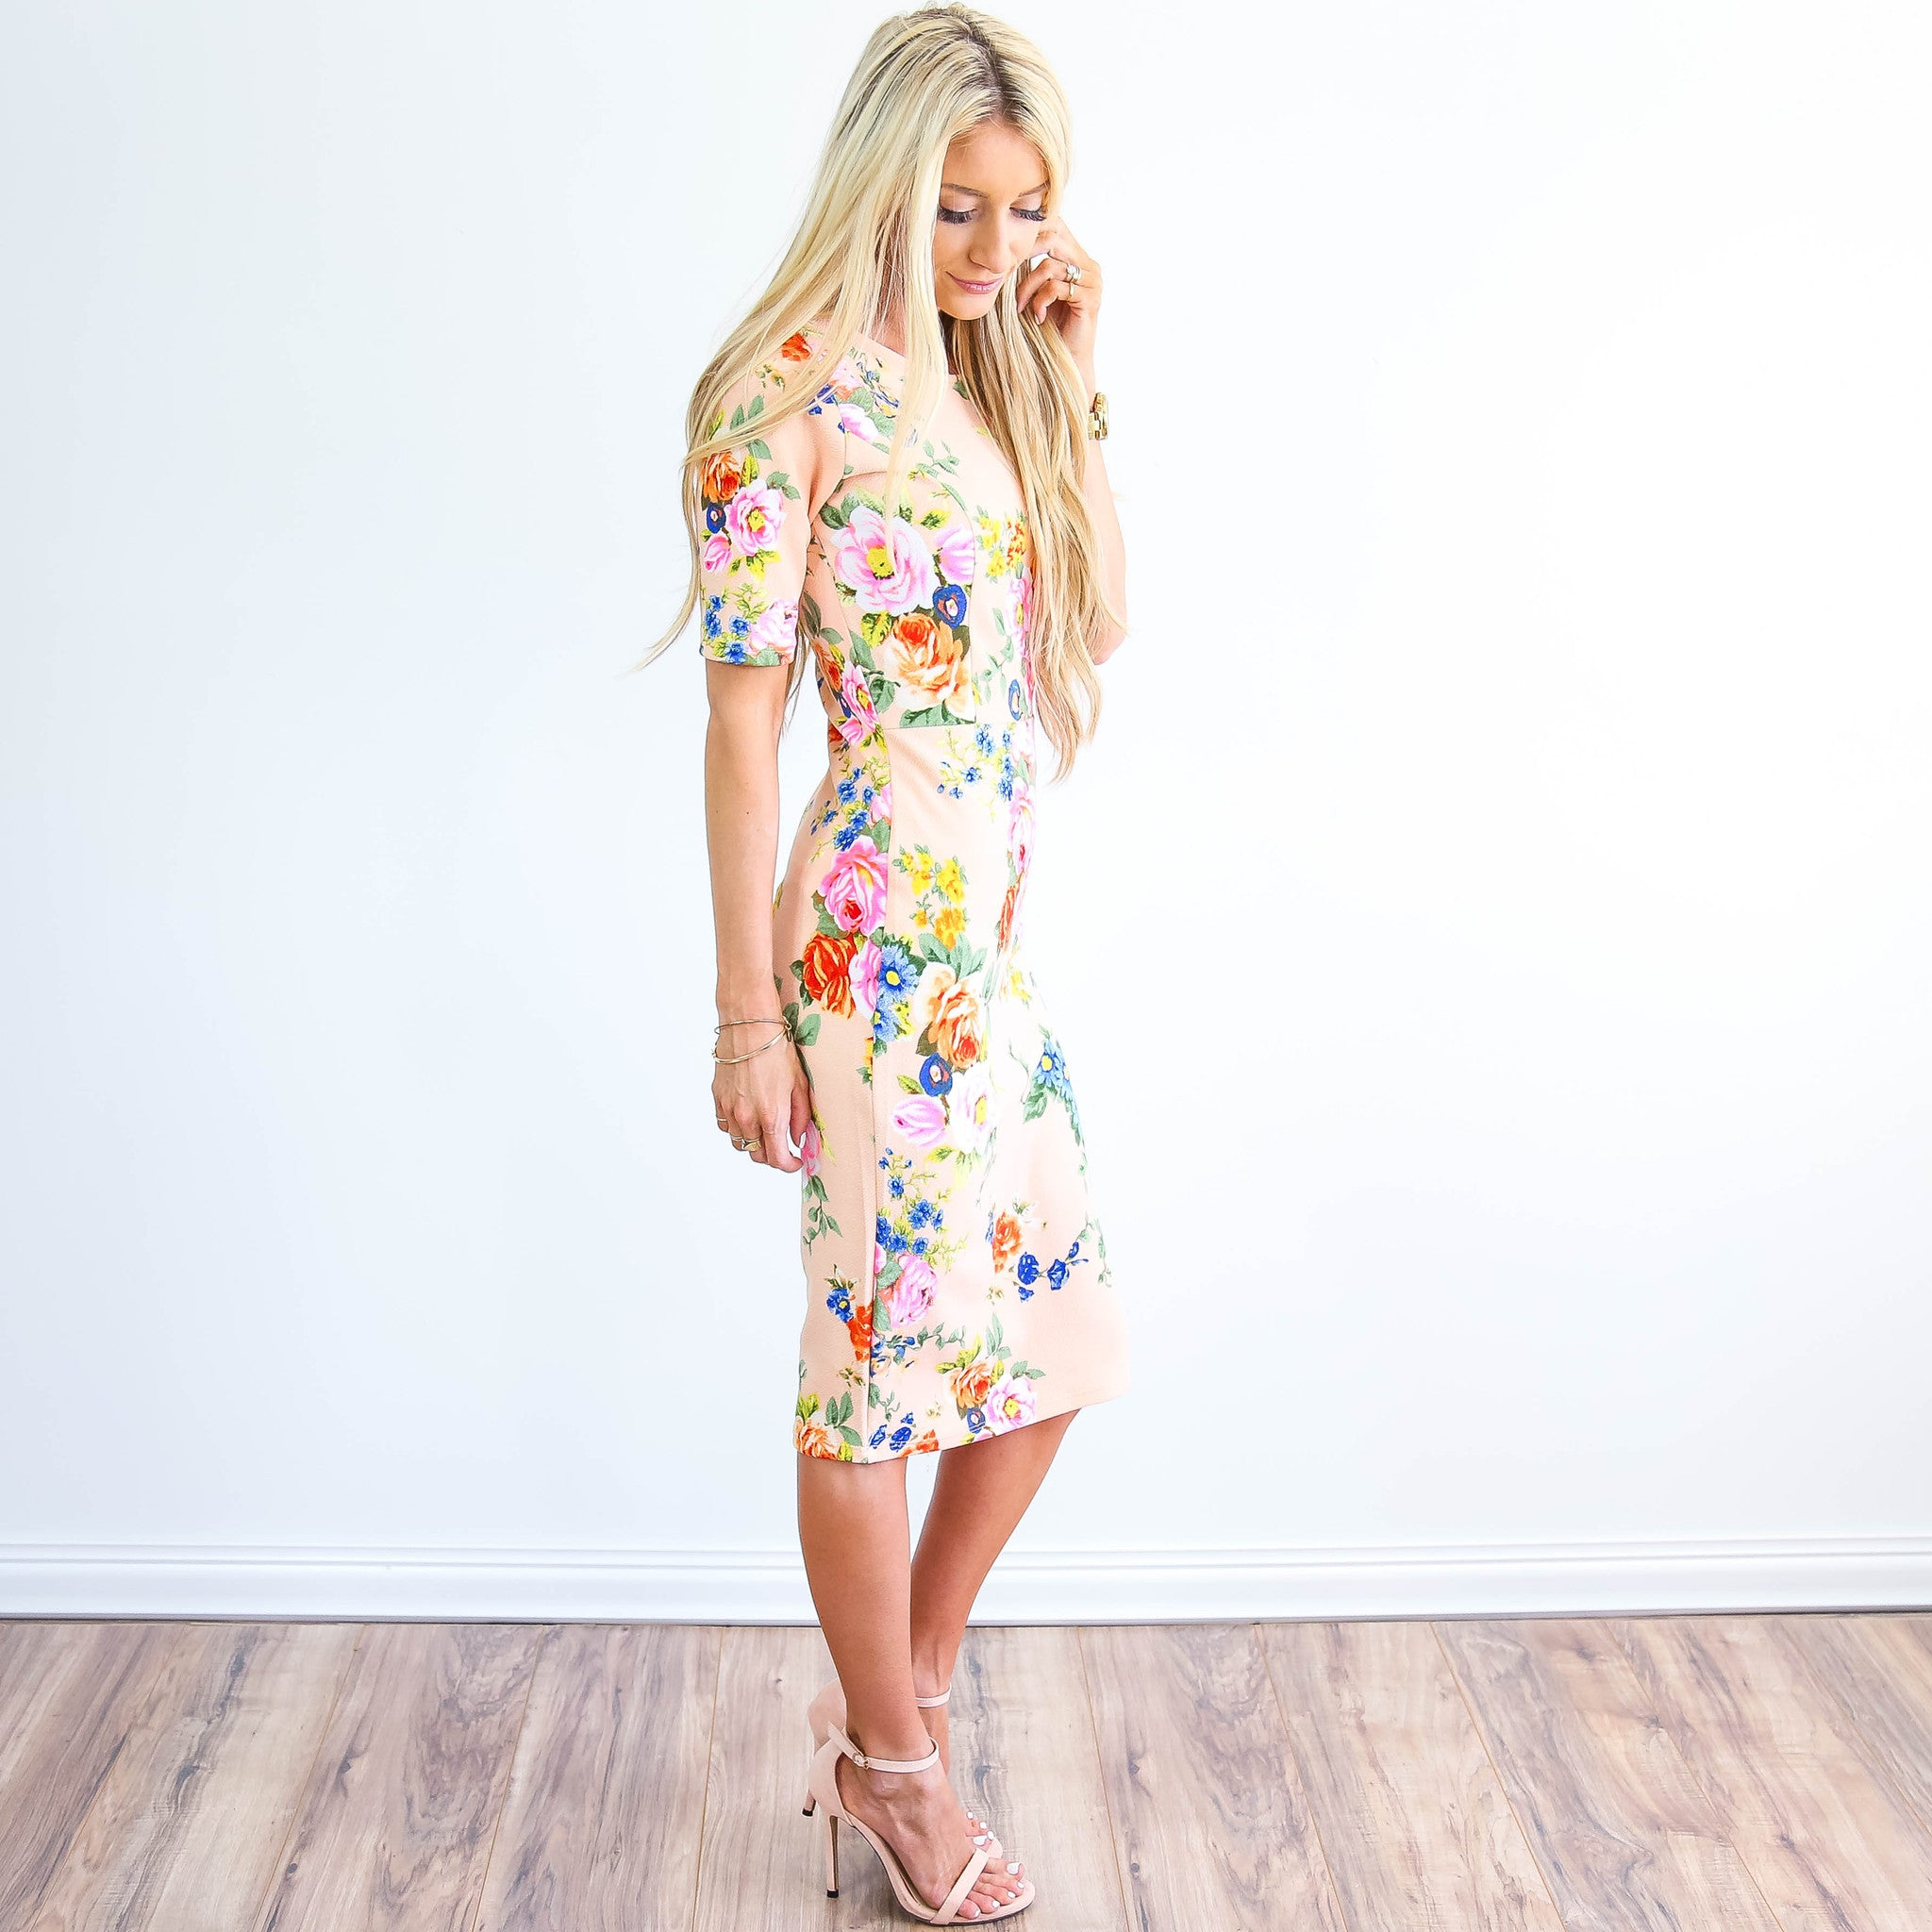 Harper floral dress